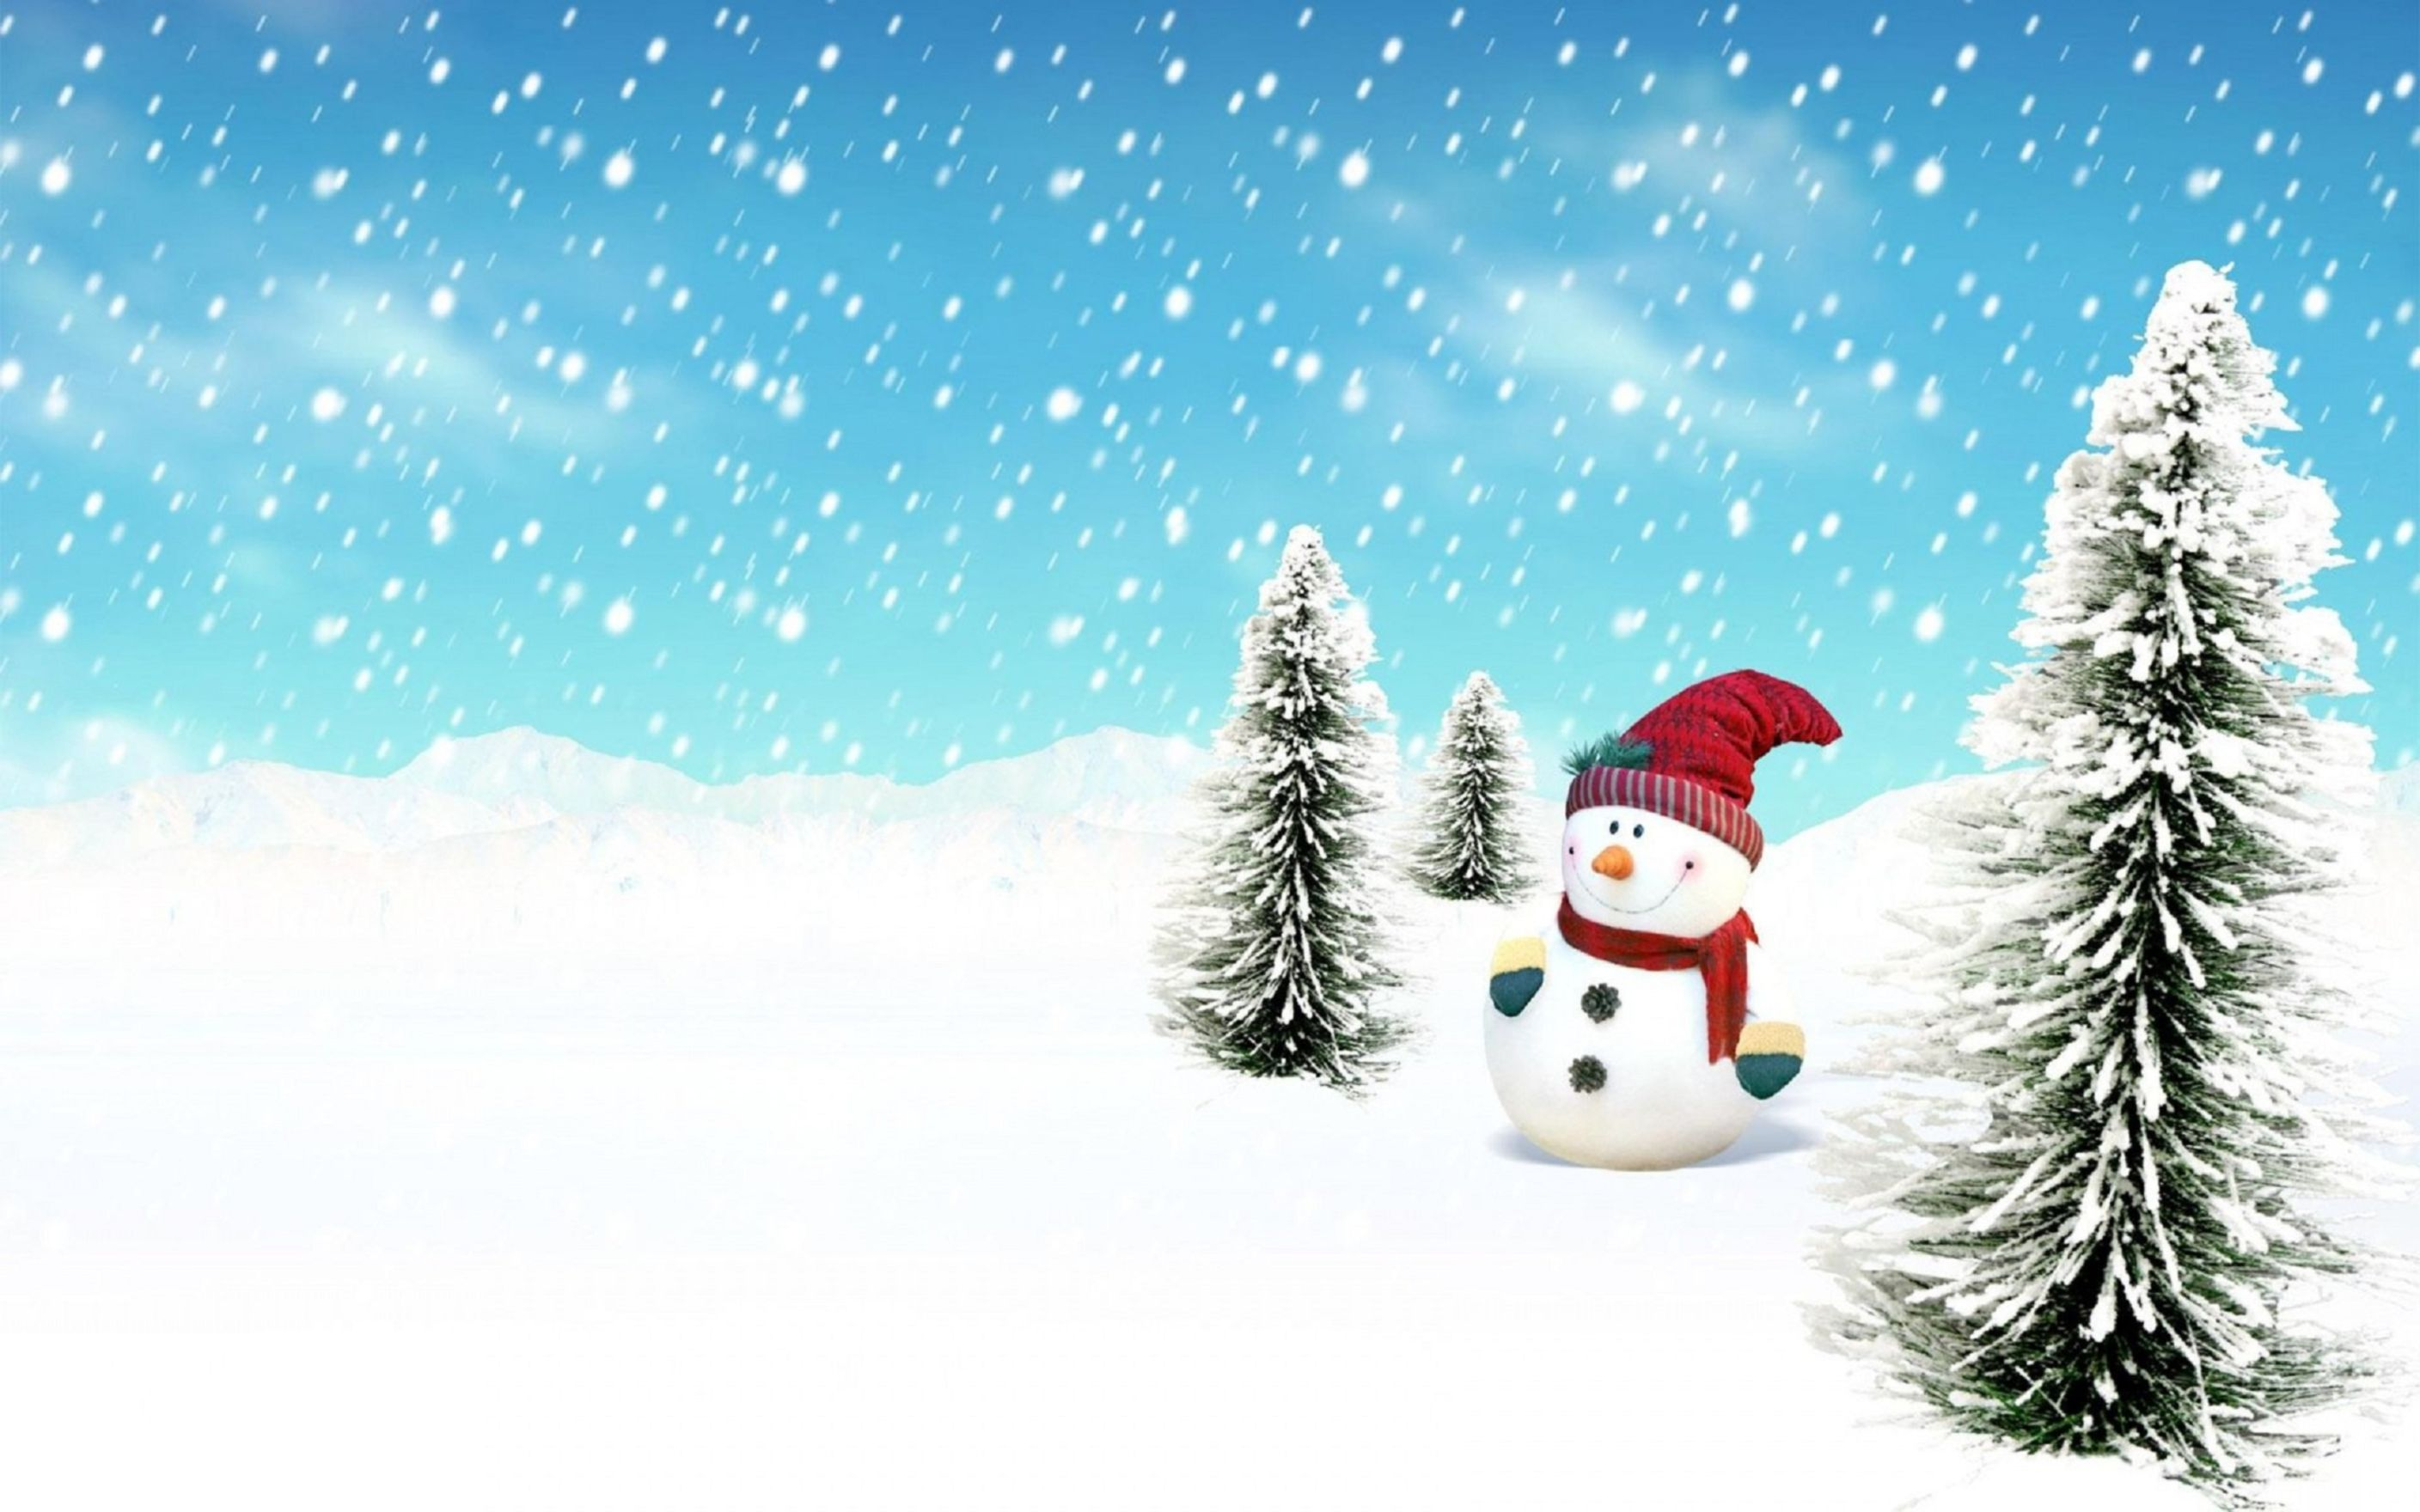 Download free HD Christmas Snowman Image Wallpaper, image